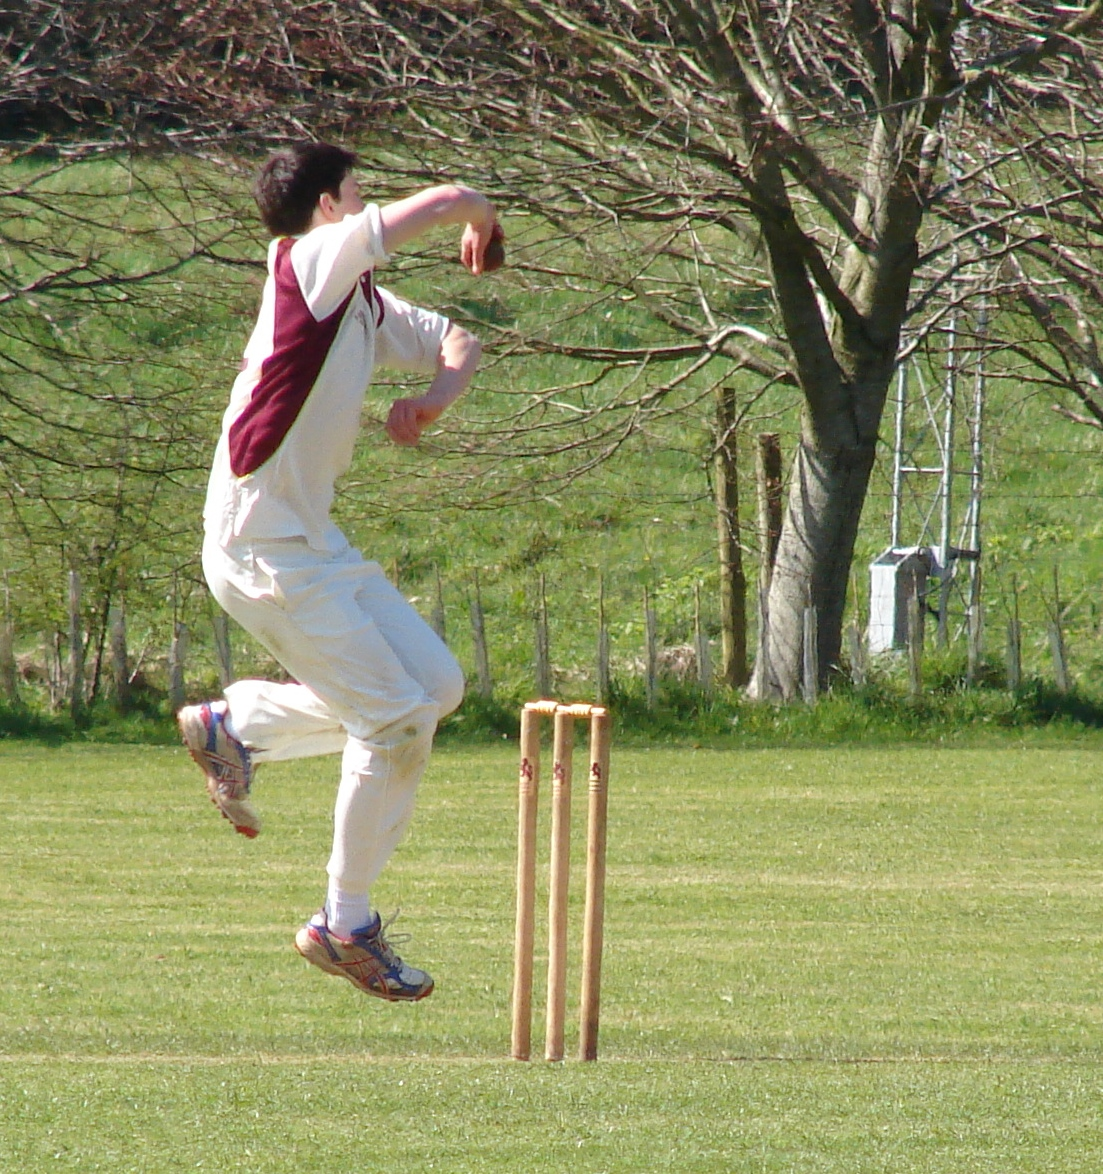 Ipplepen Cricket Club Cornwood Sport South Devon